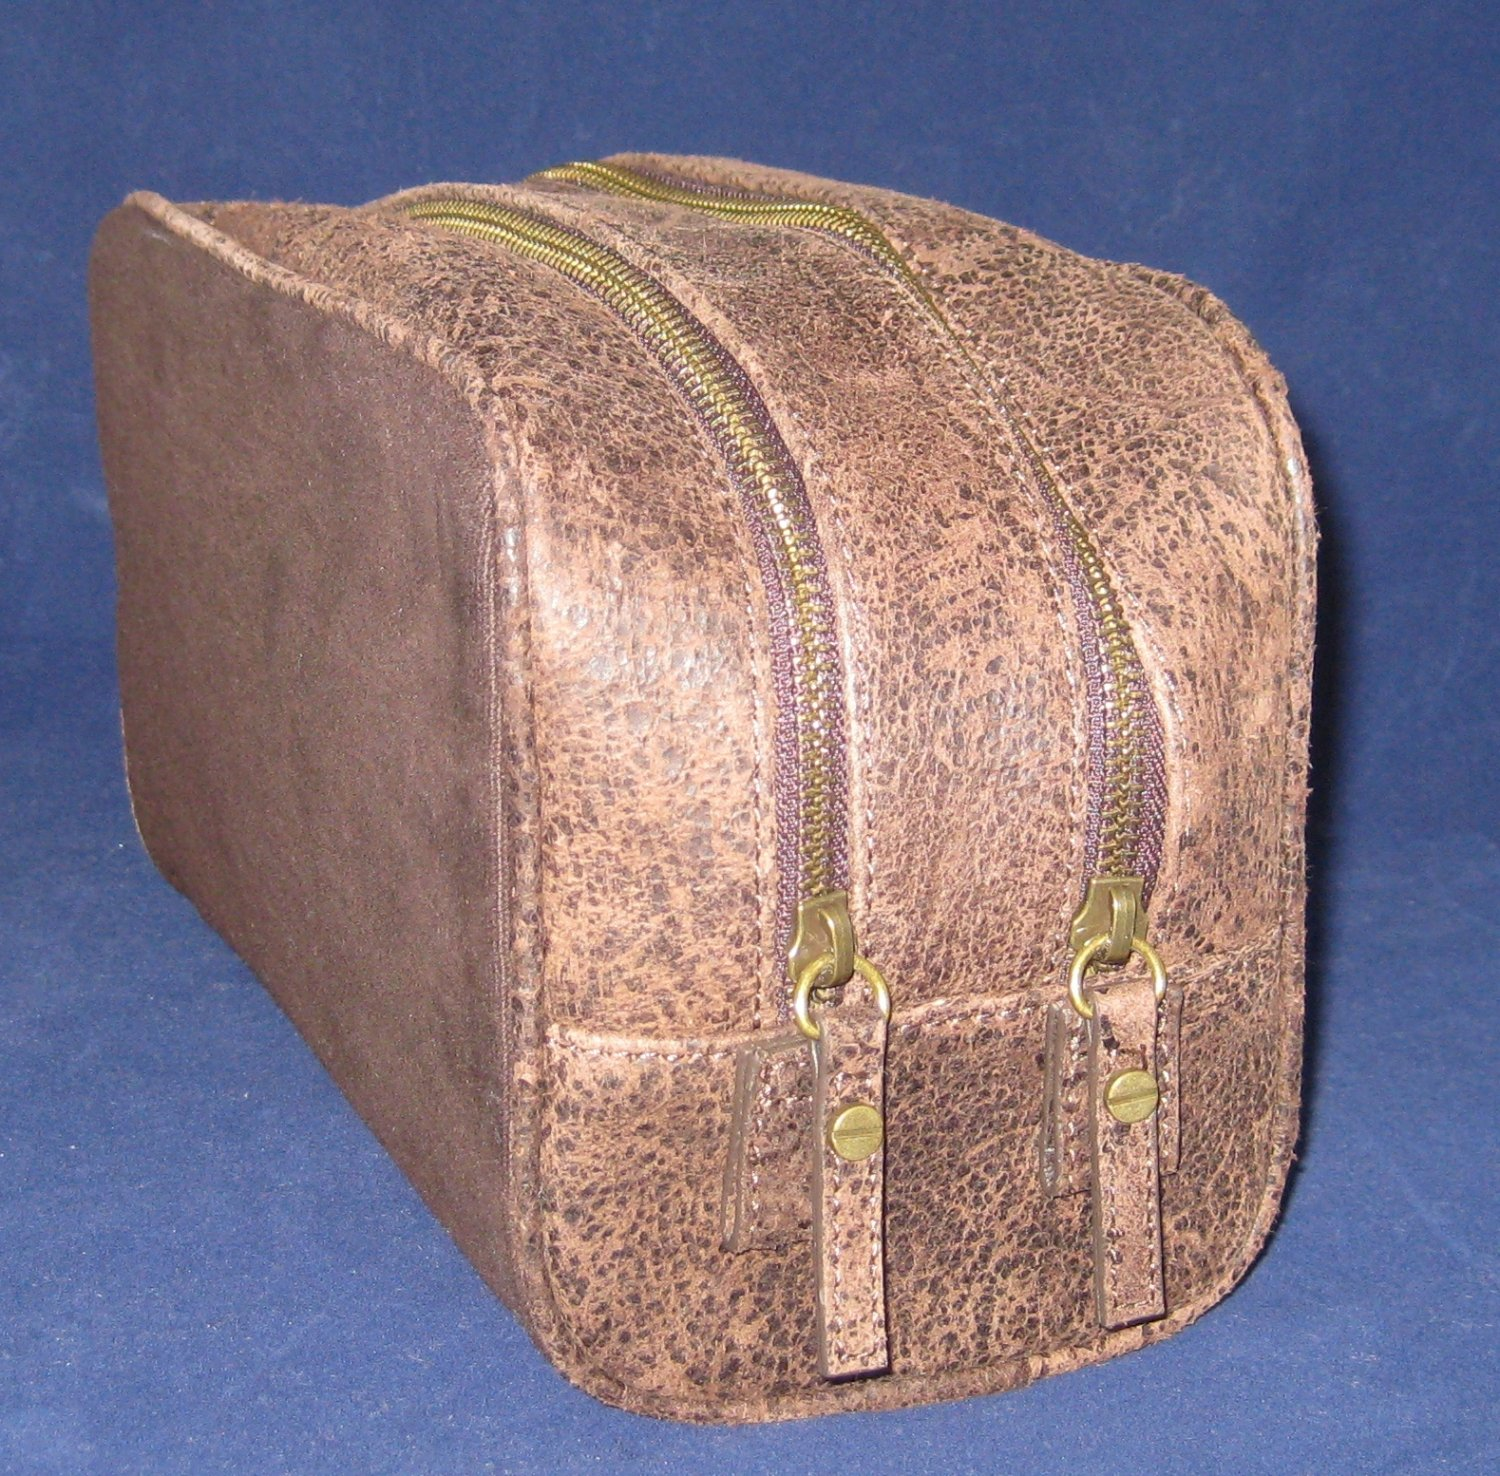 NEW Restoration Hardware RH Distressed Oiled Leather & Canvas Dopp Toiletry Kit Case